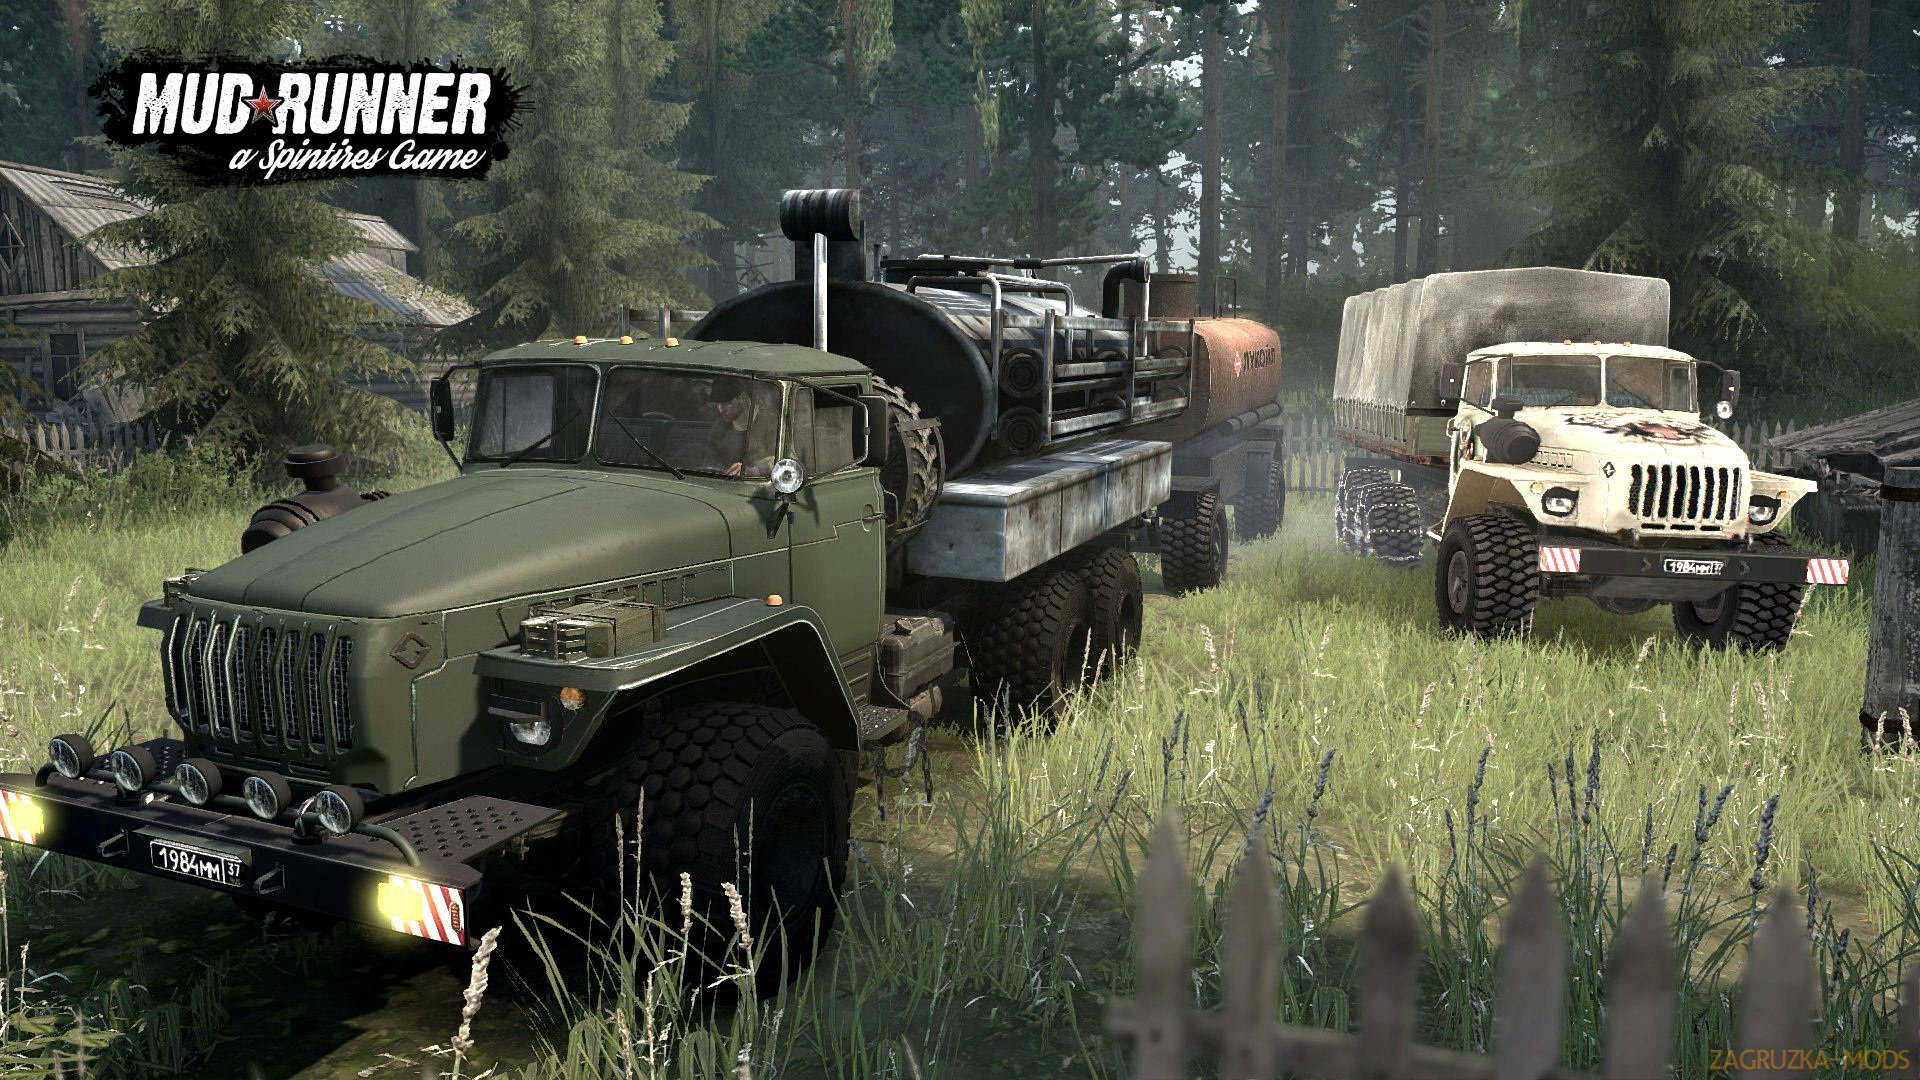 Ural-4320 v1.0 (v26.10.17) for Spin Tires: MudRunner